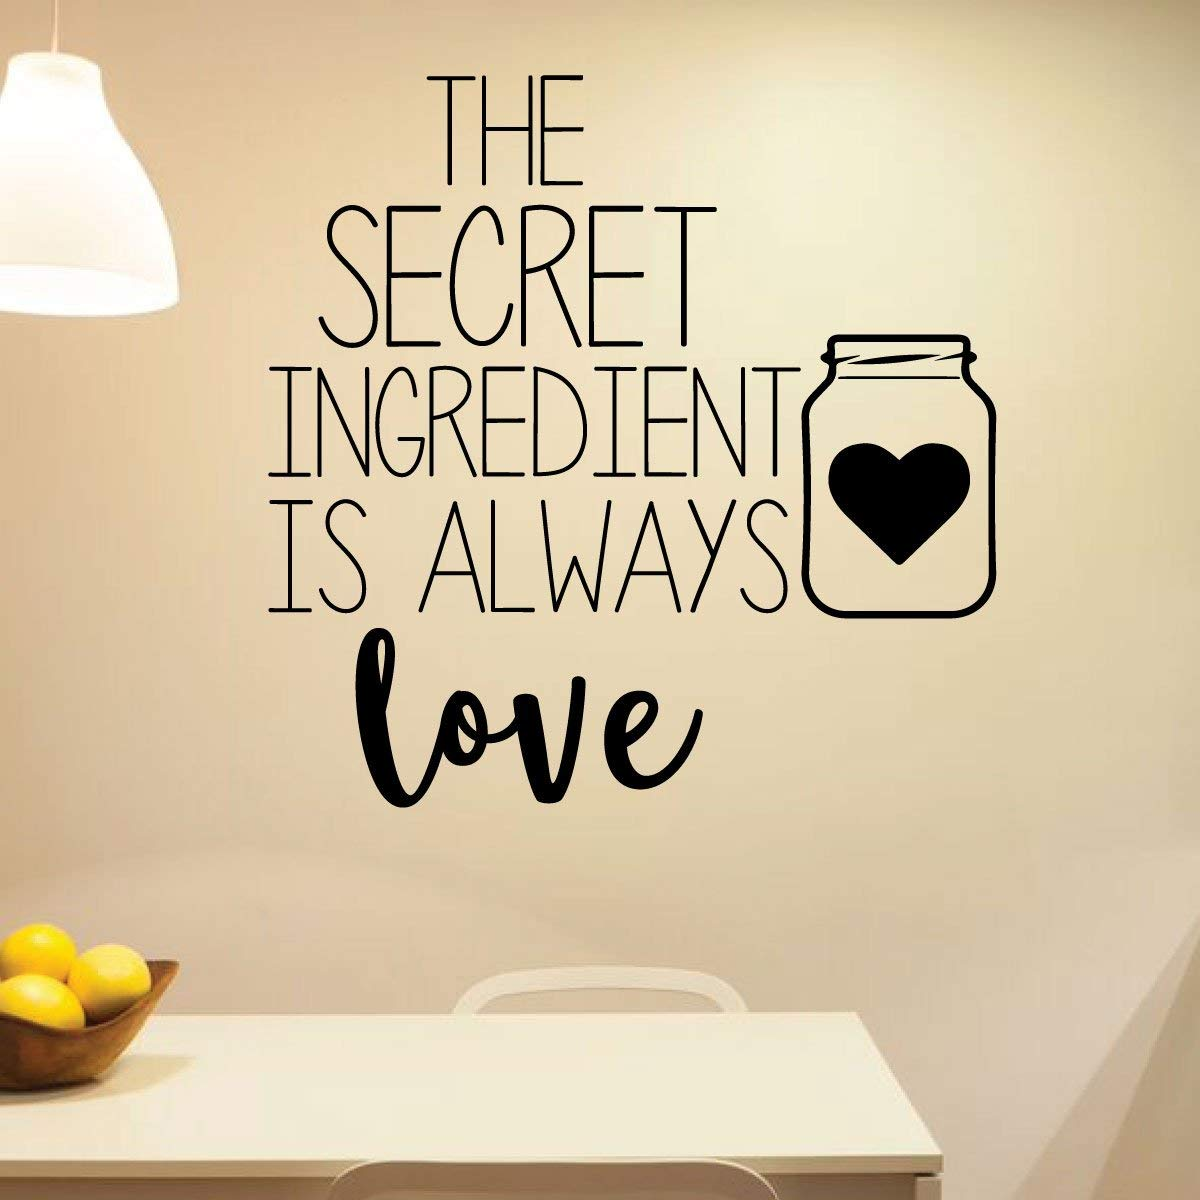 Amazon Com Kitchen Wall Vinyl Decor Sticker Love The Secret Ingredient Farmhouse Style Dining Room Decoration Black White Brown Green Yellow Red Blue Other Colors Small Large Sizes Handmade